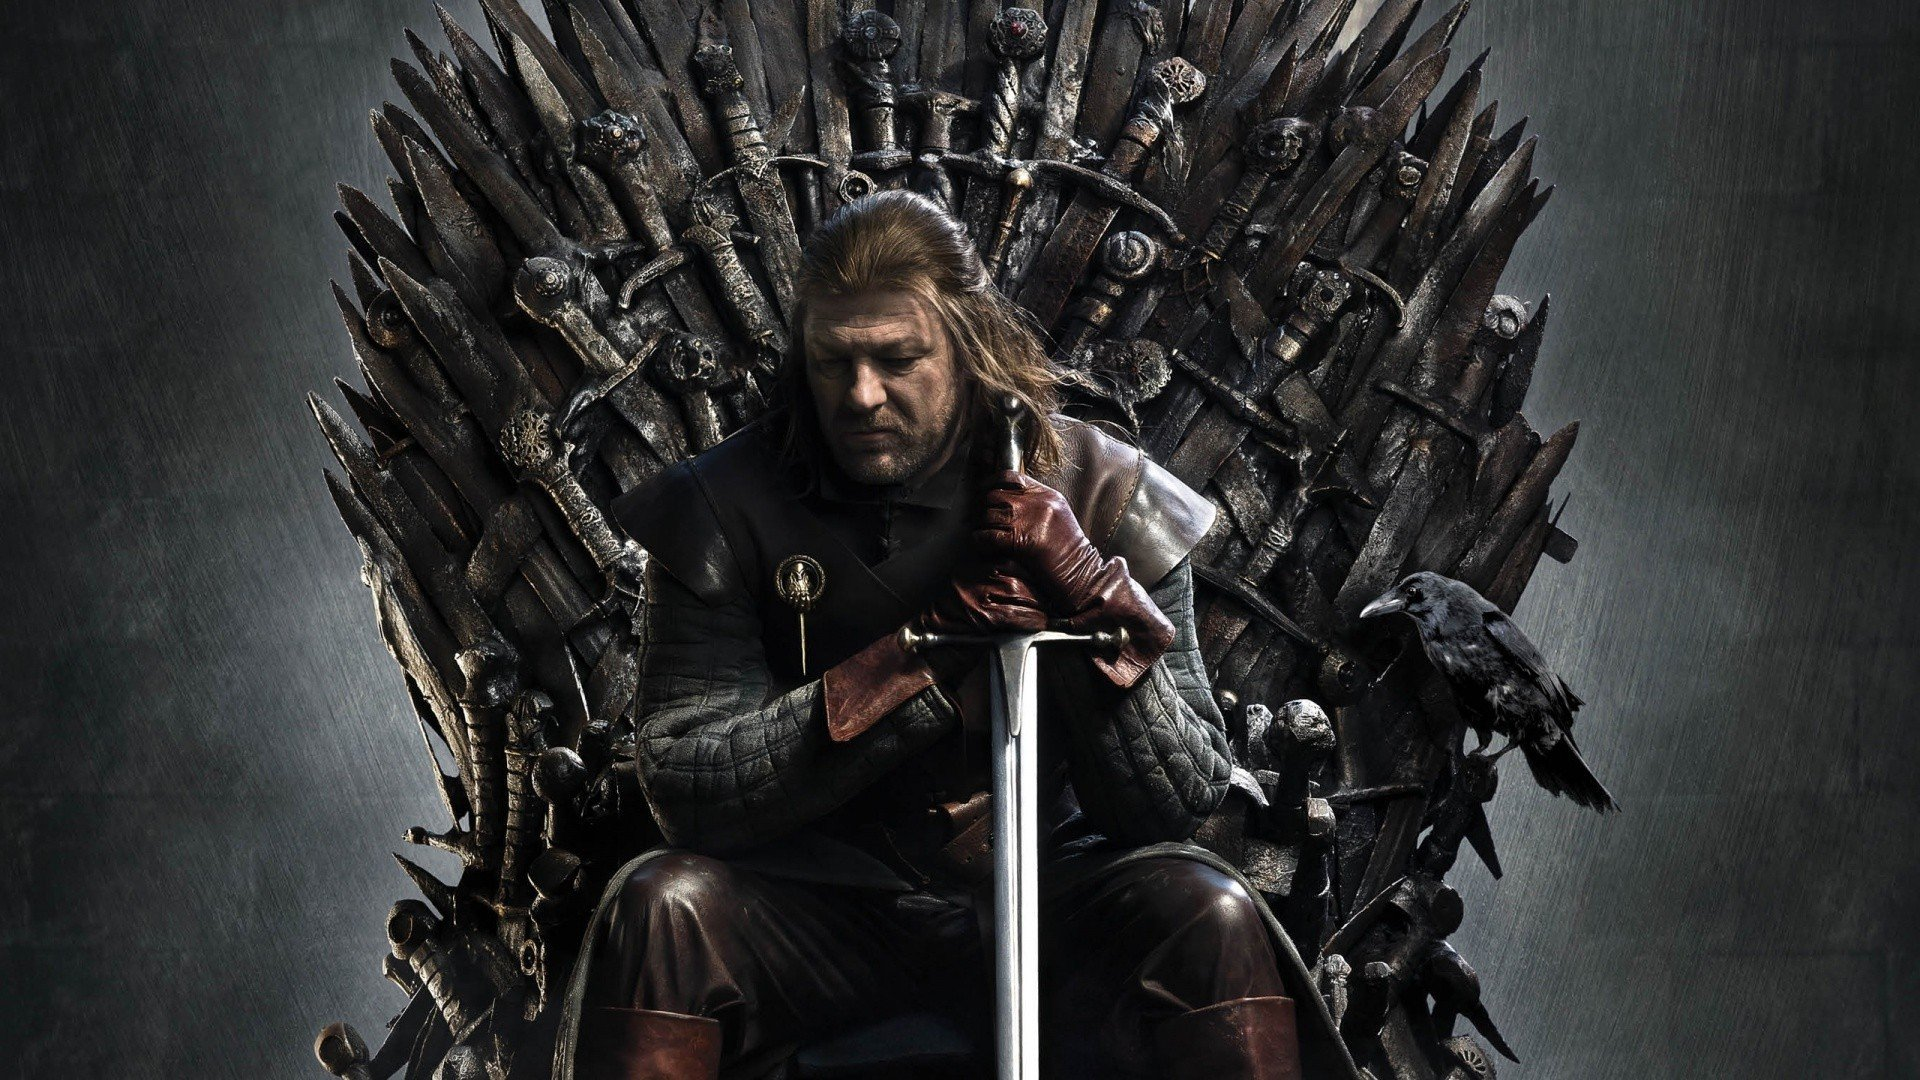 Game of Thrones   Ned Stark on the iron throne   1920x1080   Full HD 1920x1080